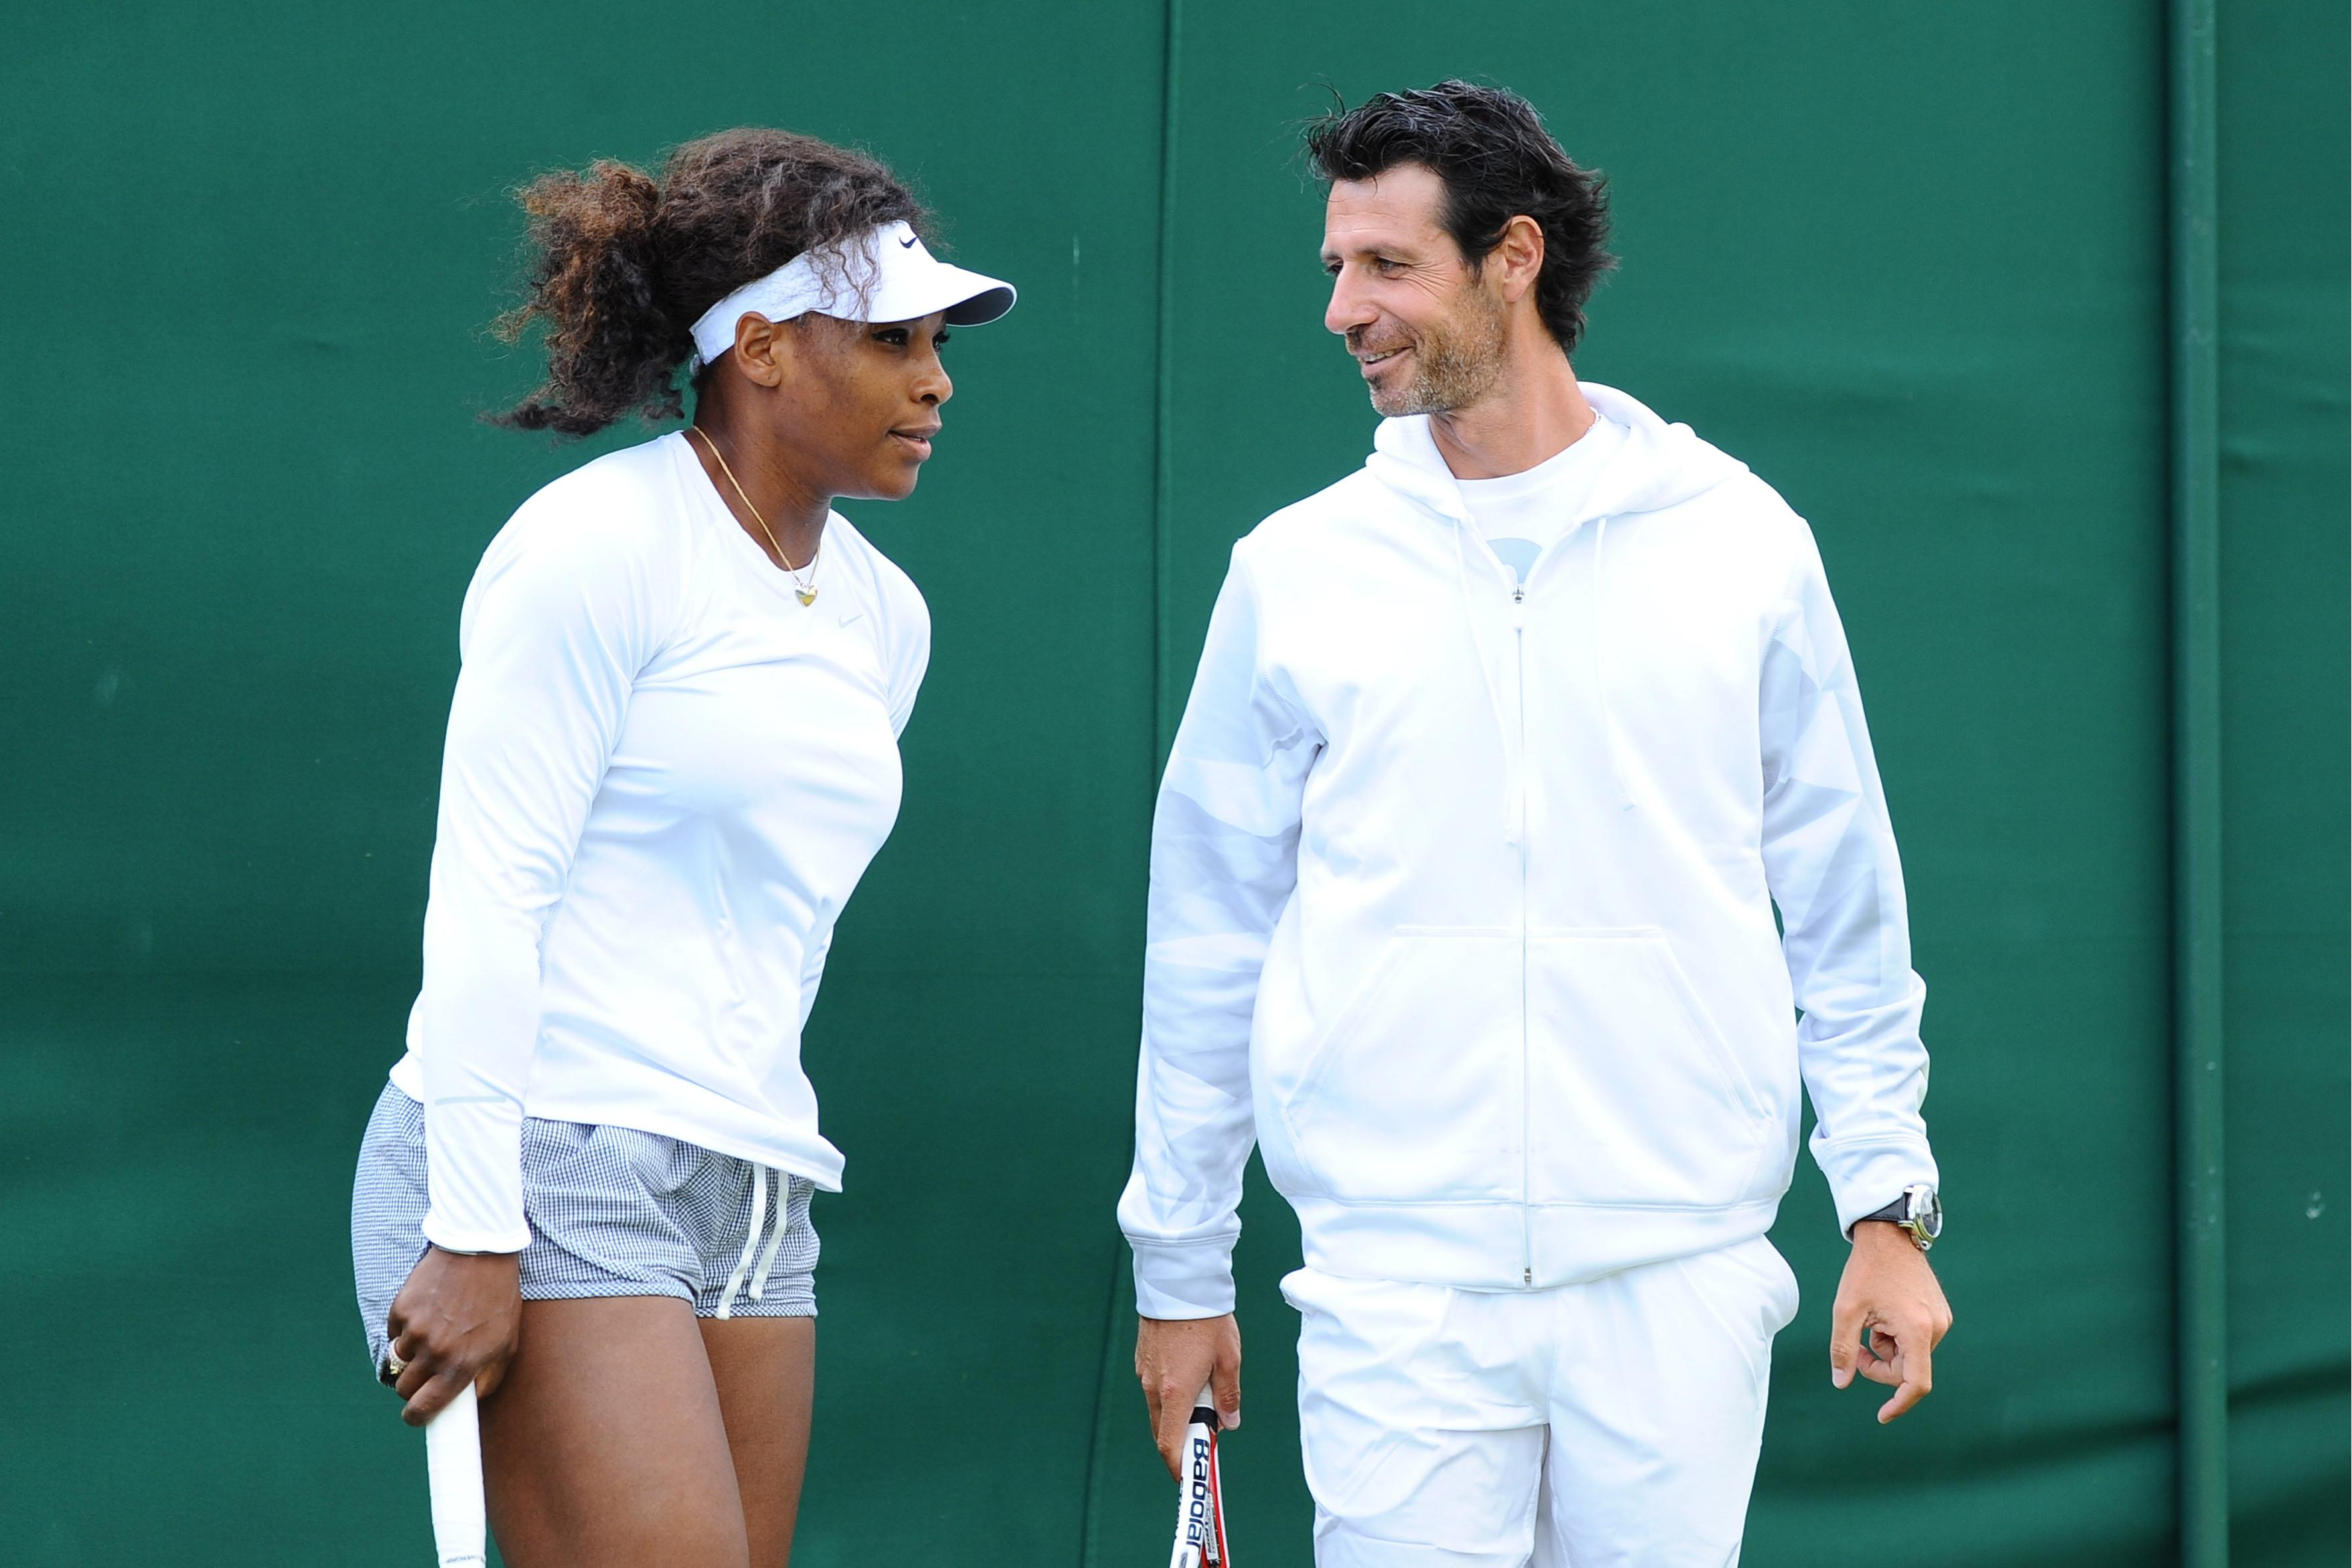 Sharapova had a dig at Serena's alleged affair with her coach, Patrick Mouratoglou